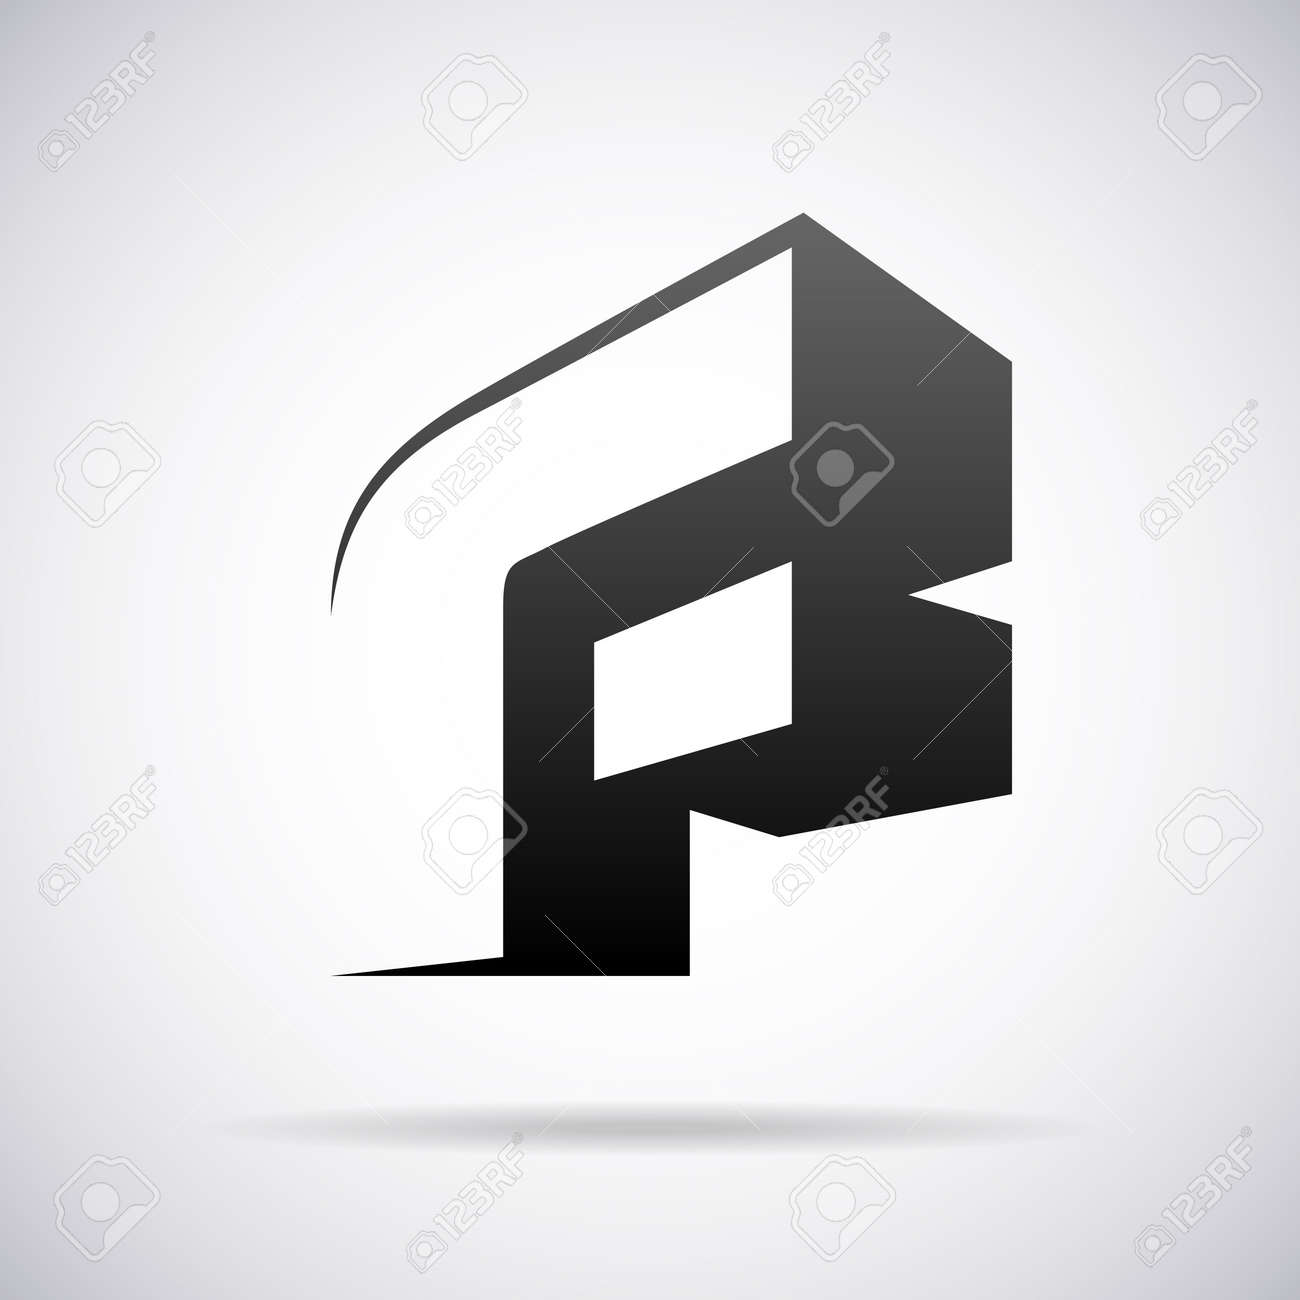 Letter F Logo Stock Photos And Images - 123RF 27ef4f1cf686